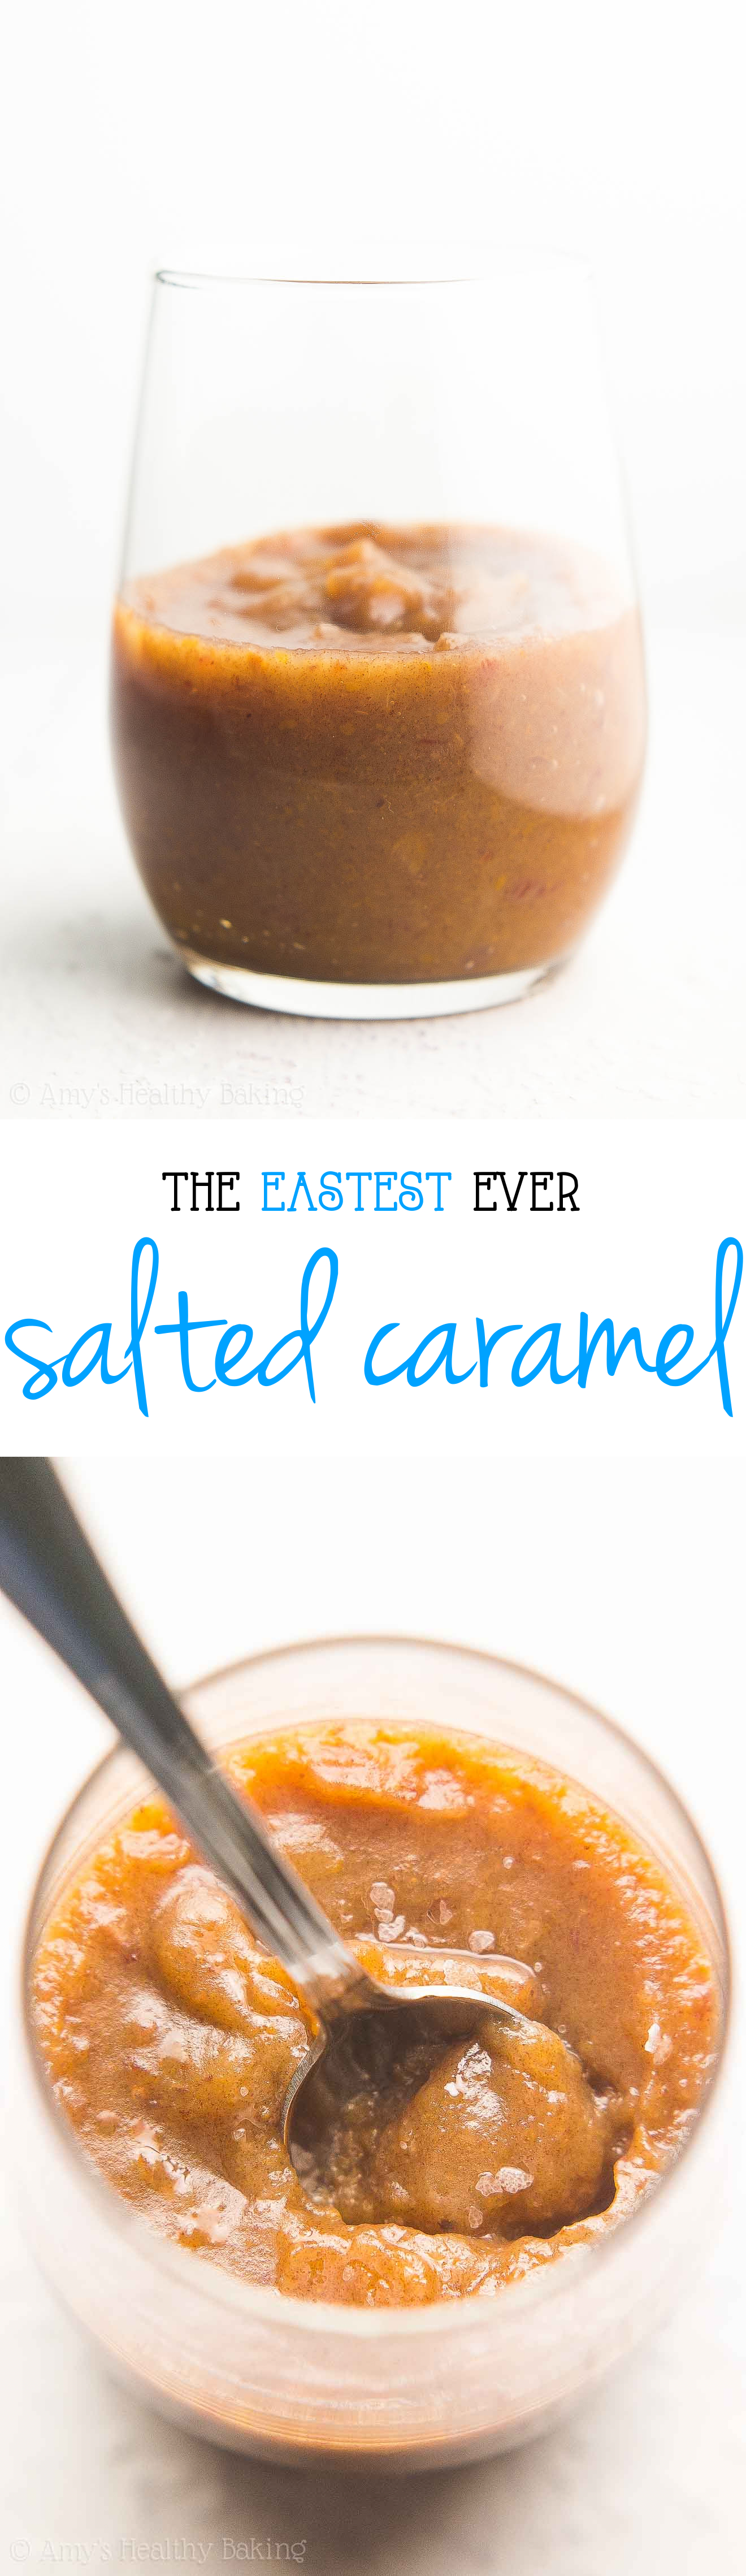 The Easiest Ever {HEALTHY!} Salted Caramel Sauce -- just 3 ingredients & 23 calories! NO heavy cream, butter or sugar in this amazing recipe!!